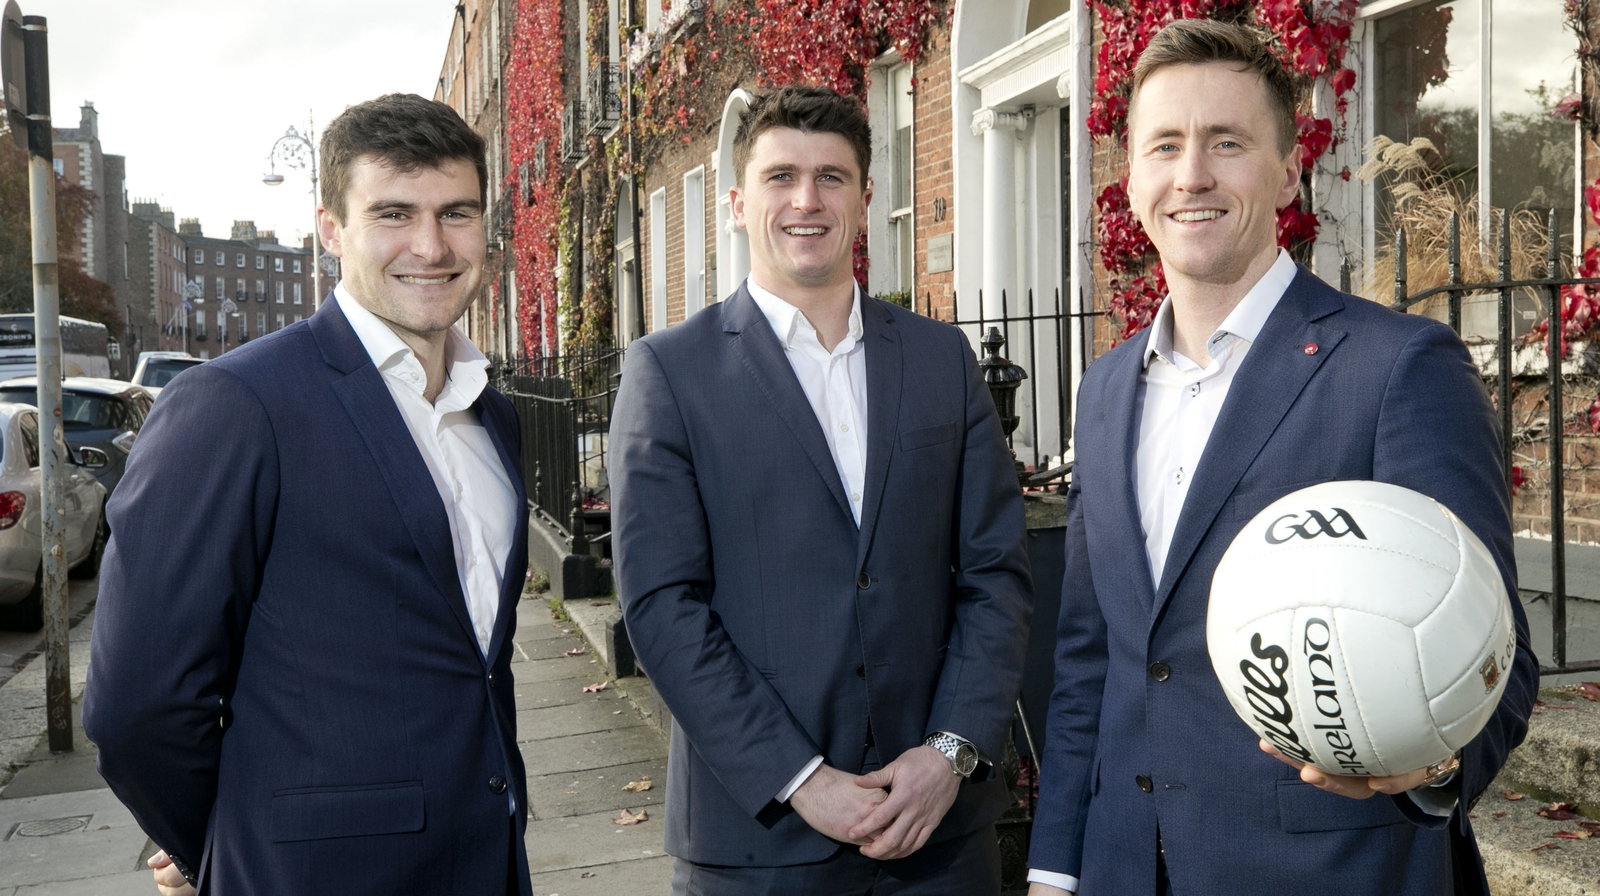 On the ball - Mayo footballer in new business venture